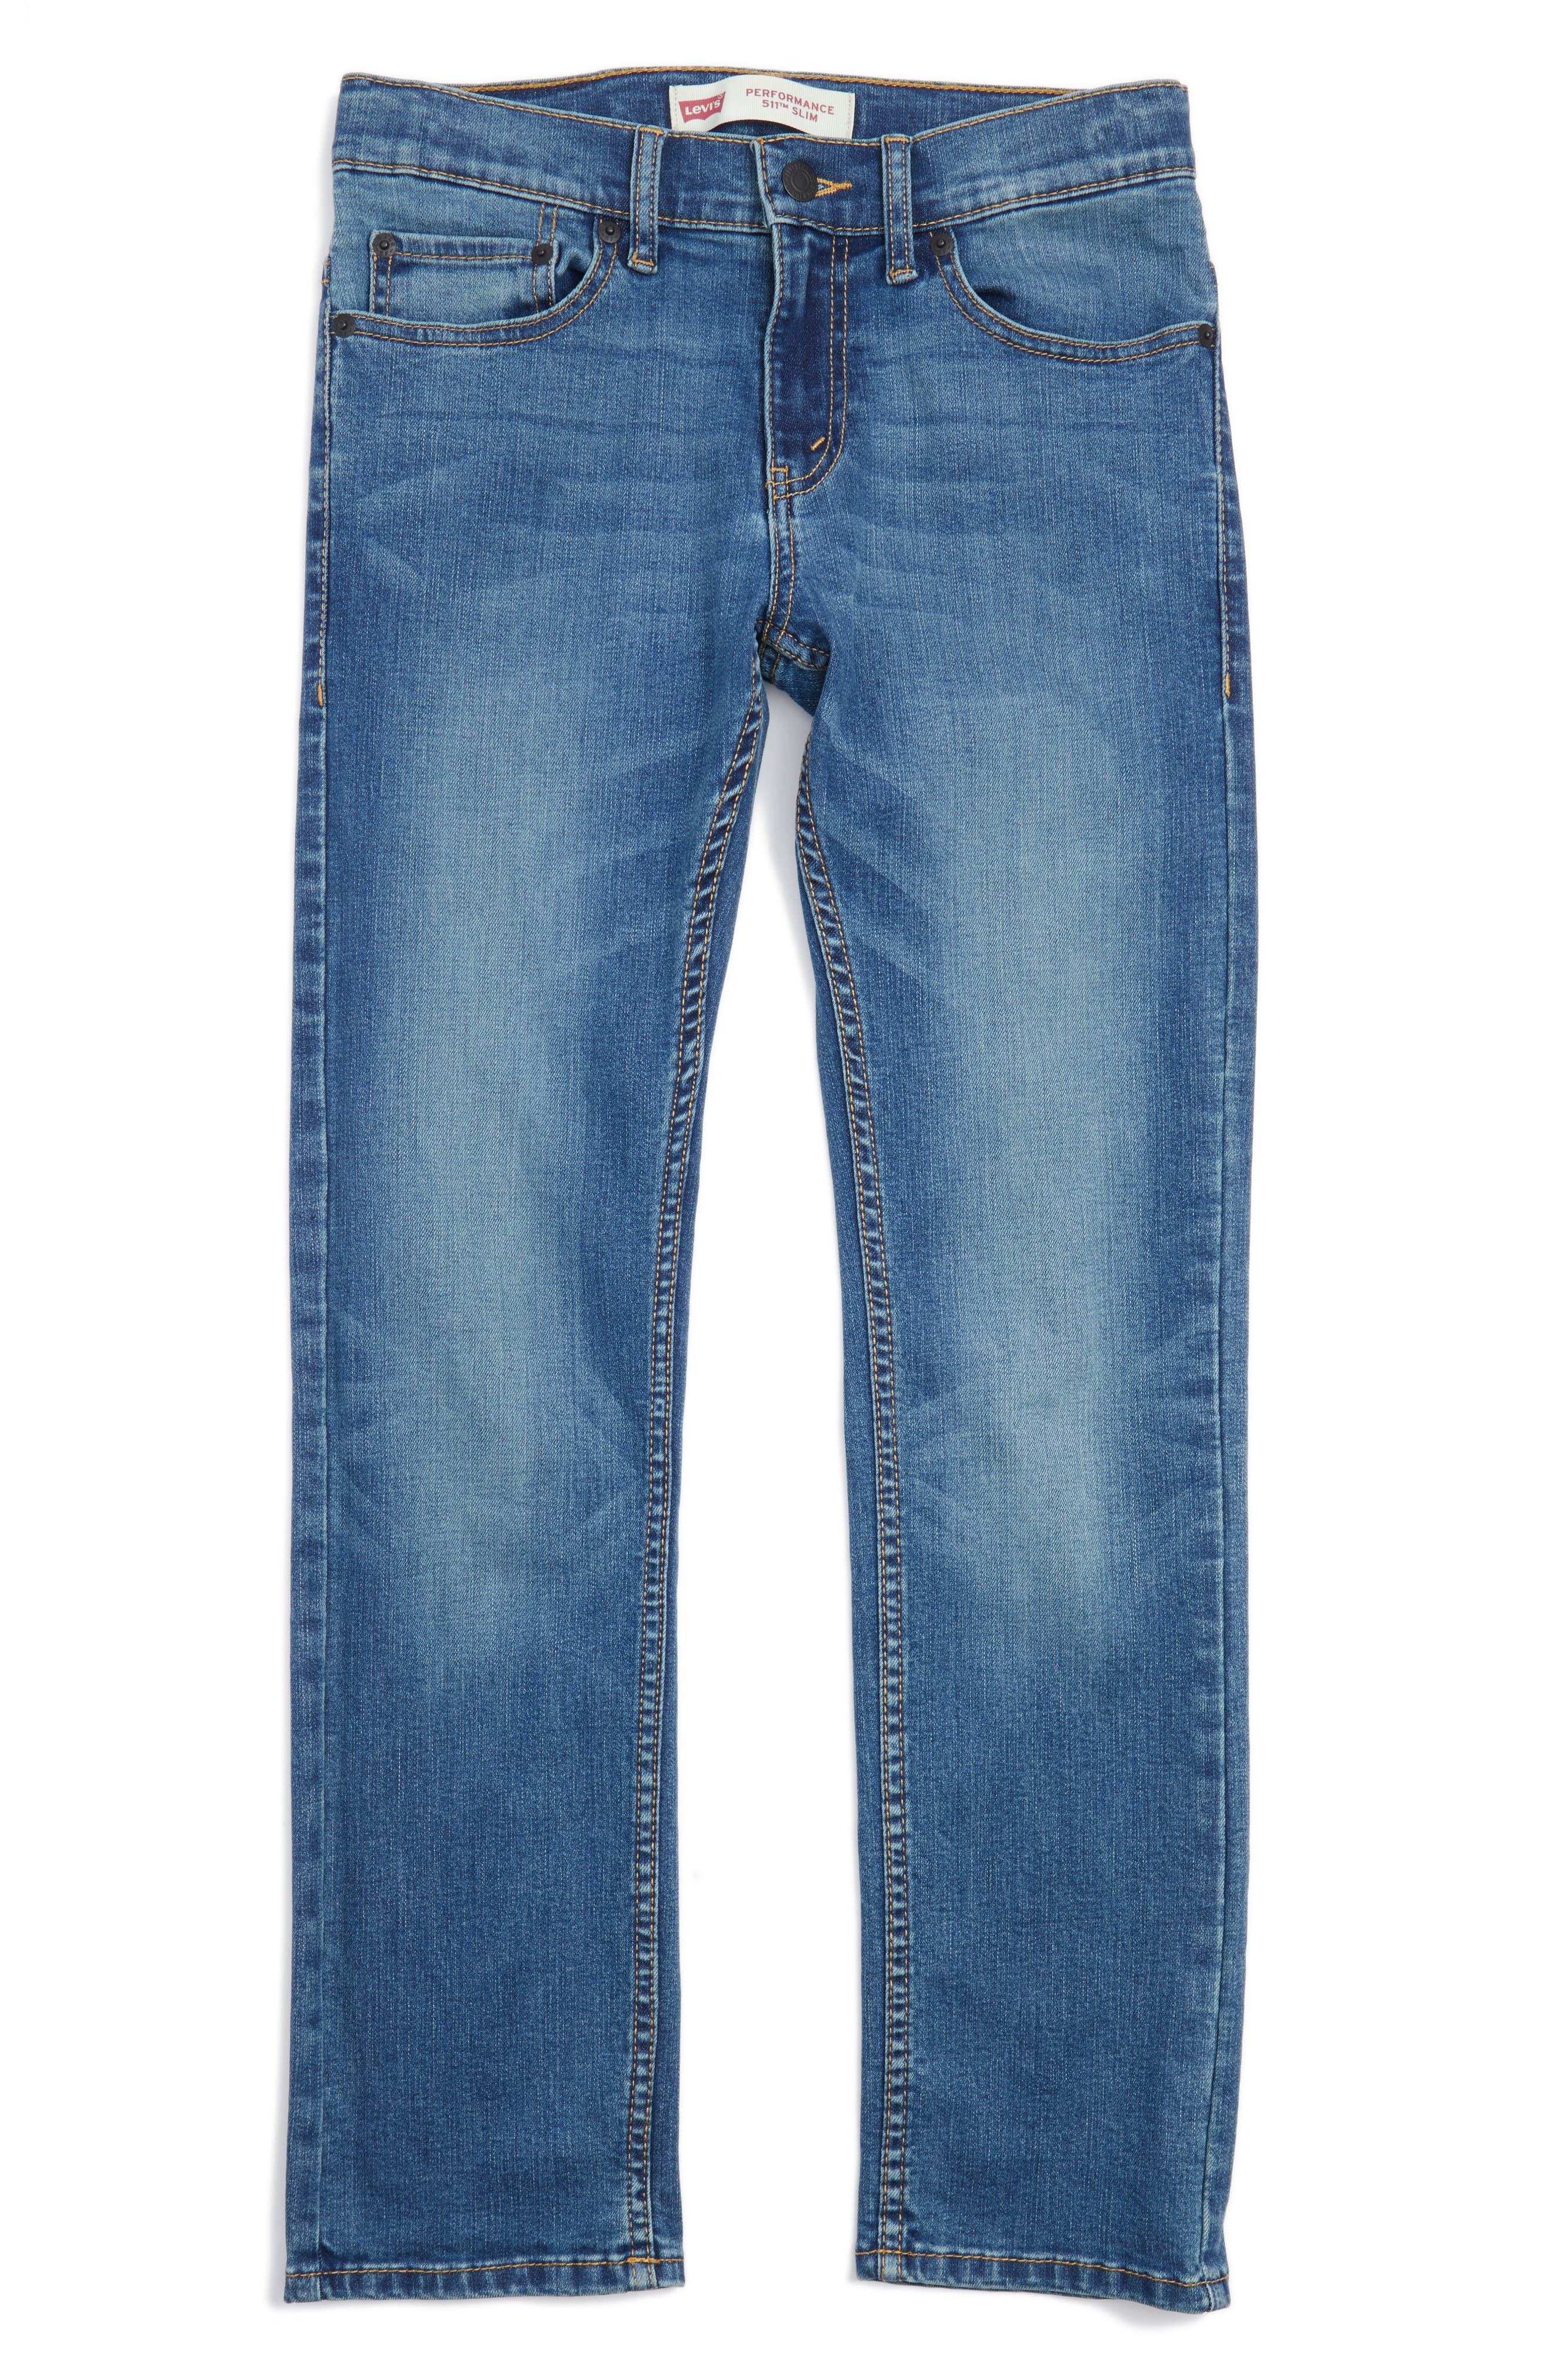 '511<sup>™</sup>' Slim Fit Jeans,                             Main thumbnail 1, color,                             Obsidian